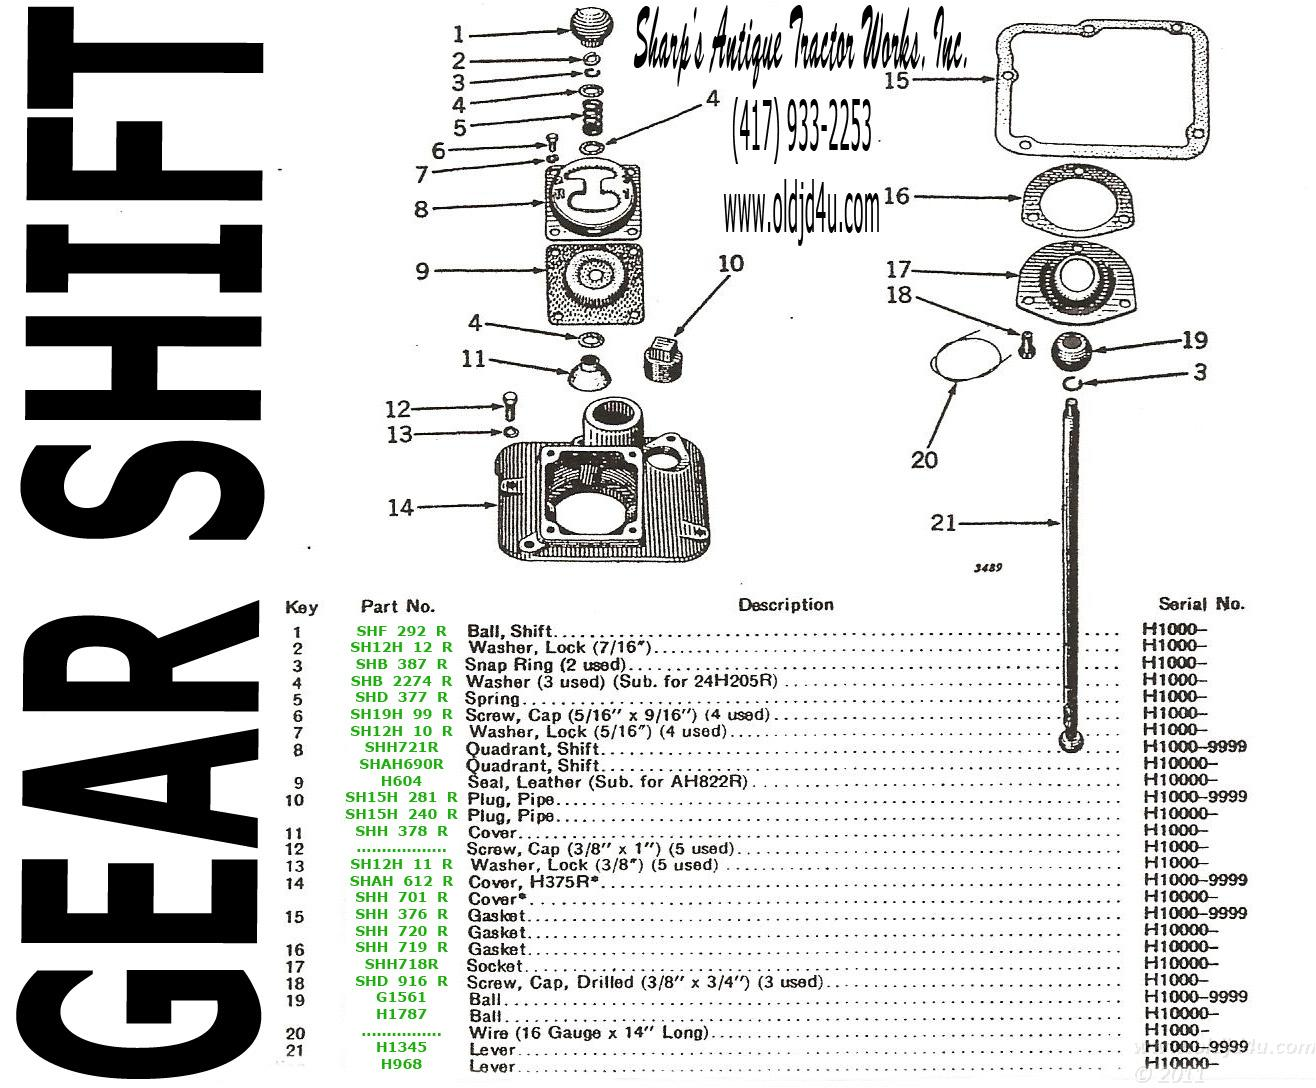 John Deere 2 Cyl Tractor Oldjdforyou Parts H. John Deere H Parts Catalog Gear Shift. John Deere. John Deere B Transmission Shifter Diagram At Scoala.co